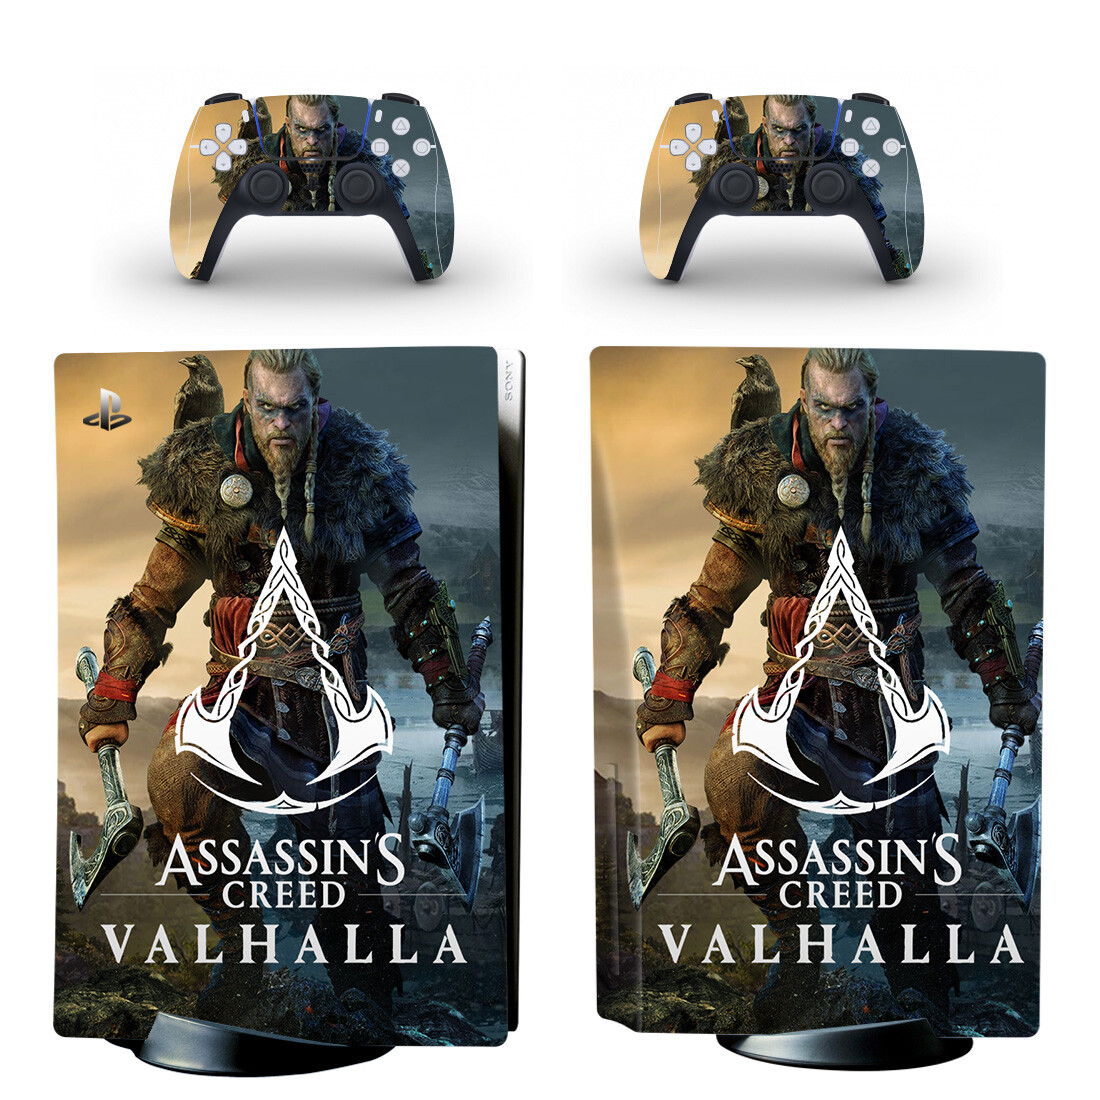 Valhalla Assassin's Creed Sticker Decal For PlayStation 5